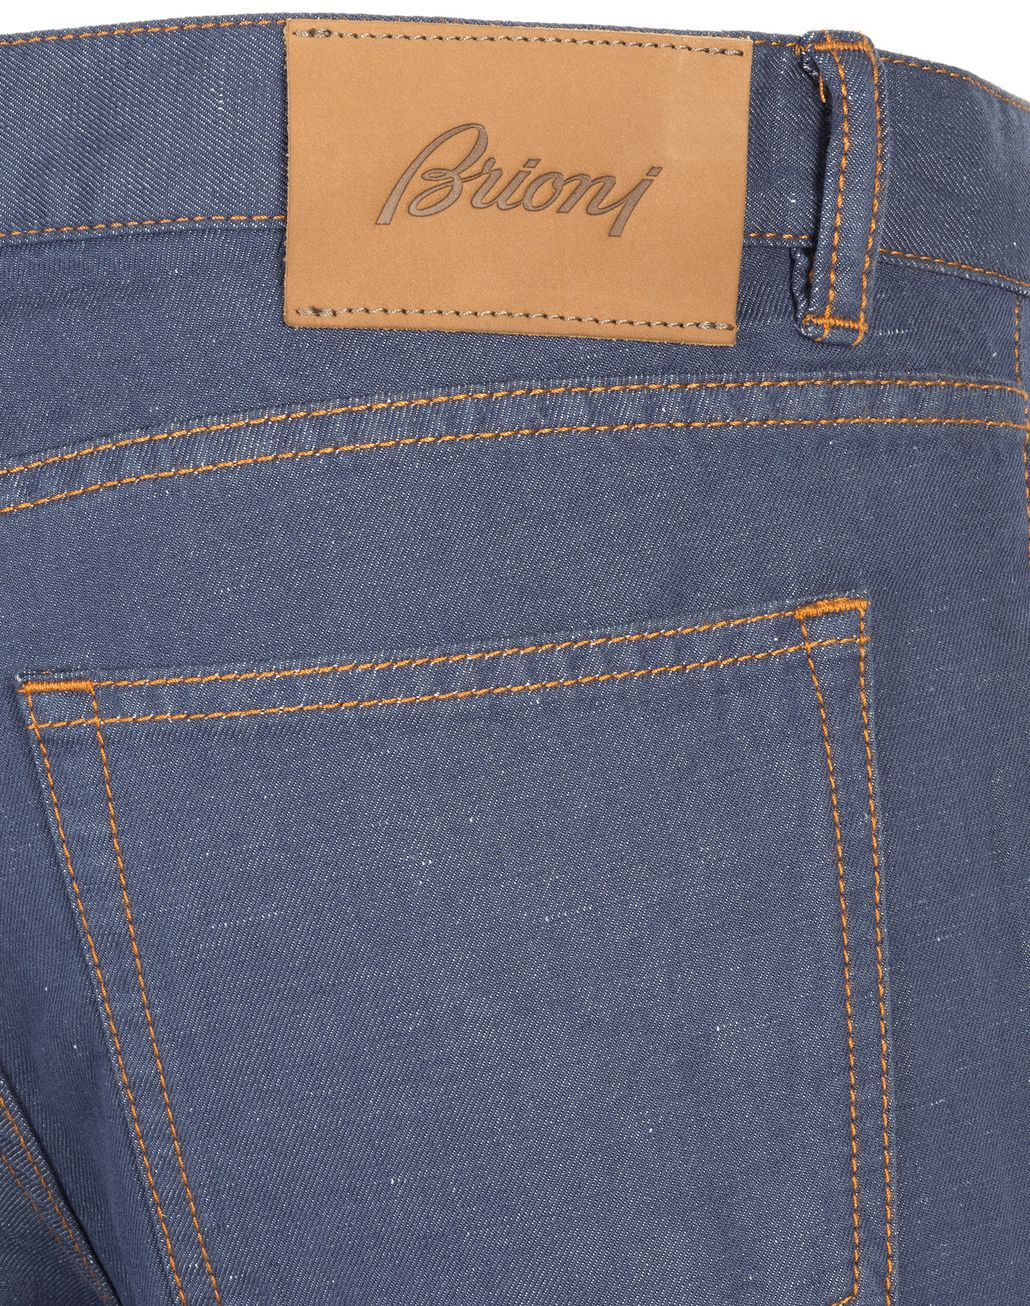 BRIONI Bluette Slim Fit Cotton and Linen Aneto Jeans  Denim [*** pickupInStoreShippingNotGuaranteed_info ***] a